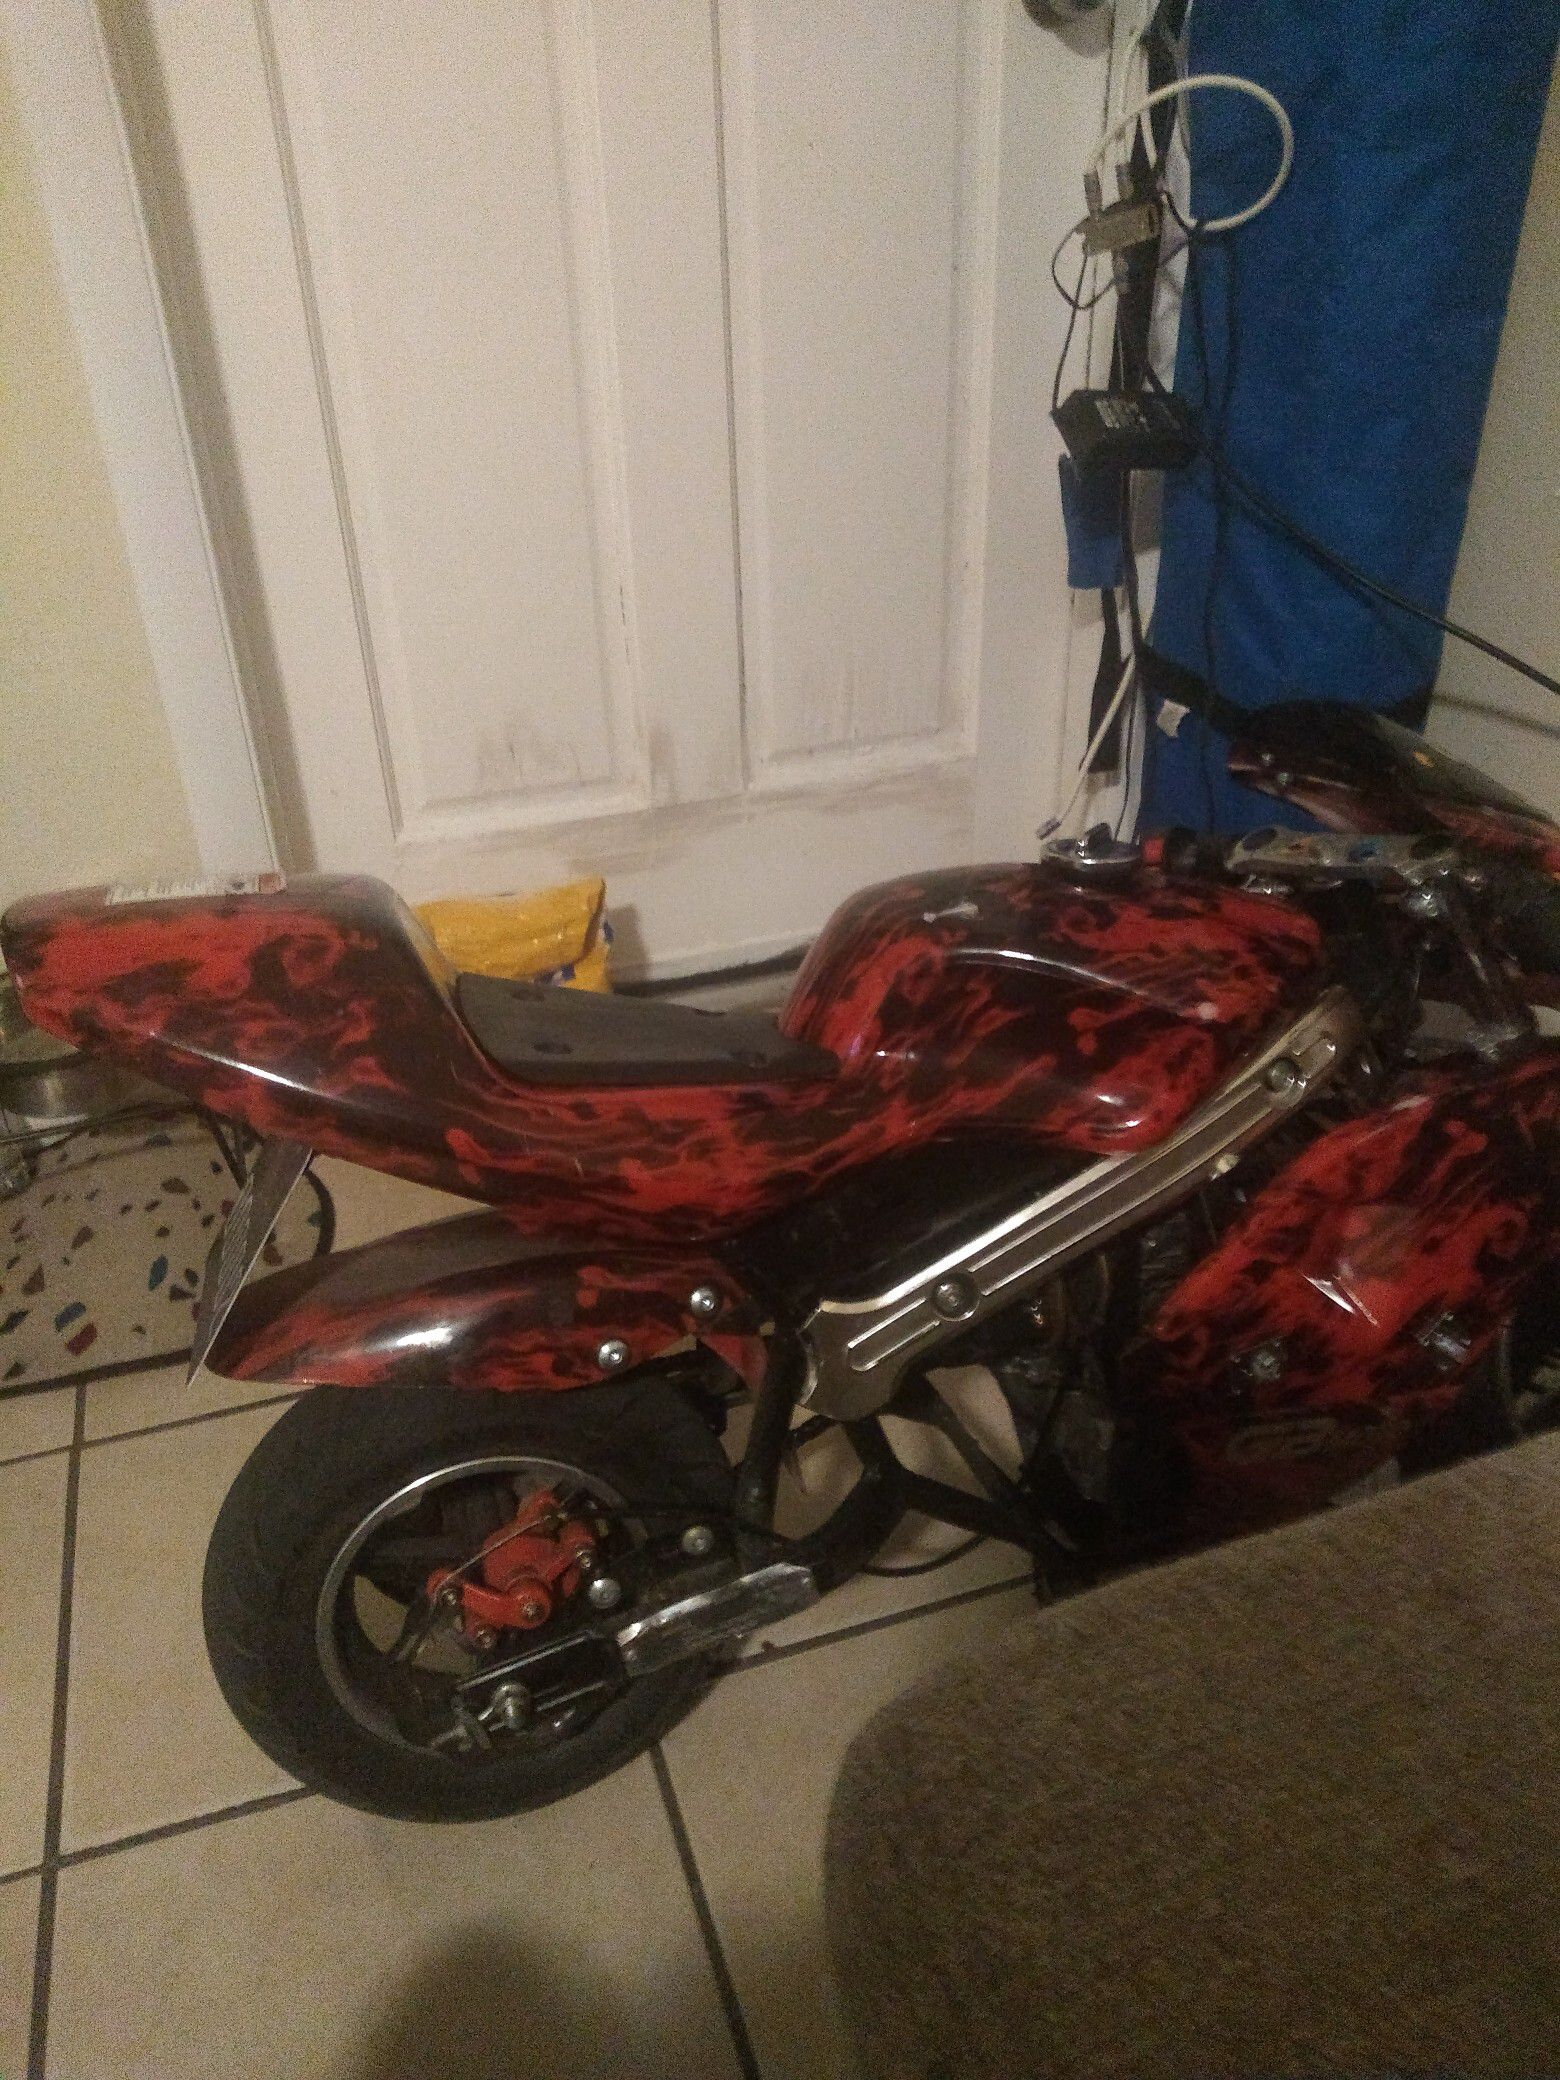 Pocket bike run great great fun for kids my son out grow it I just put new gas line it run good